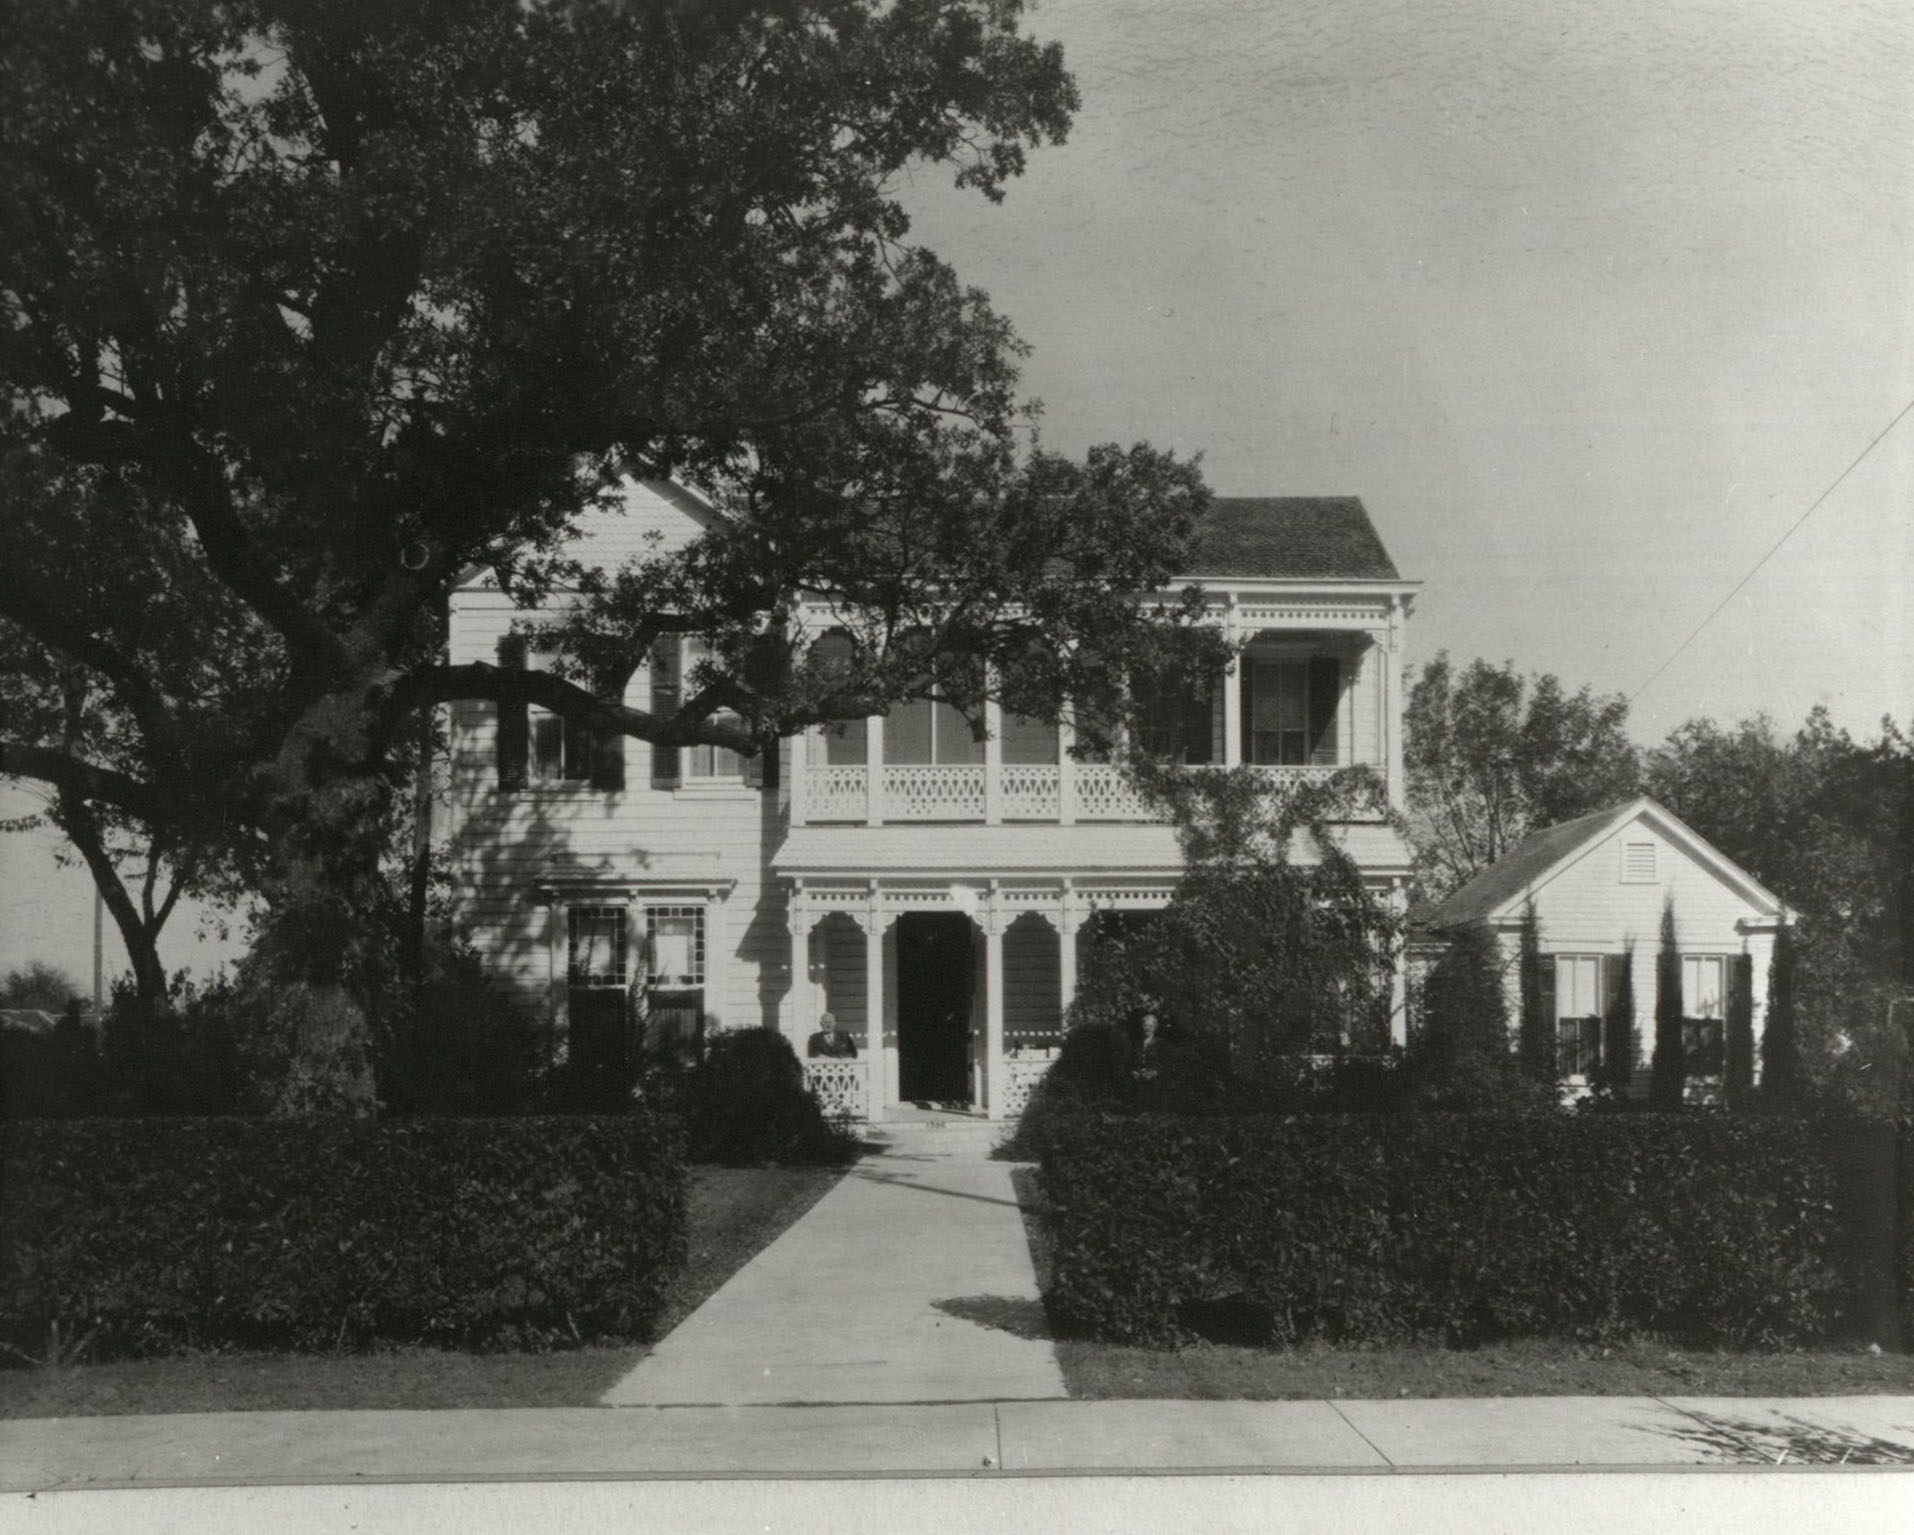 Judge W.H. Jenkins House, undated